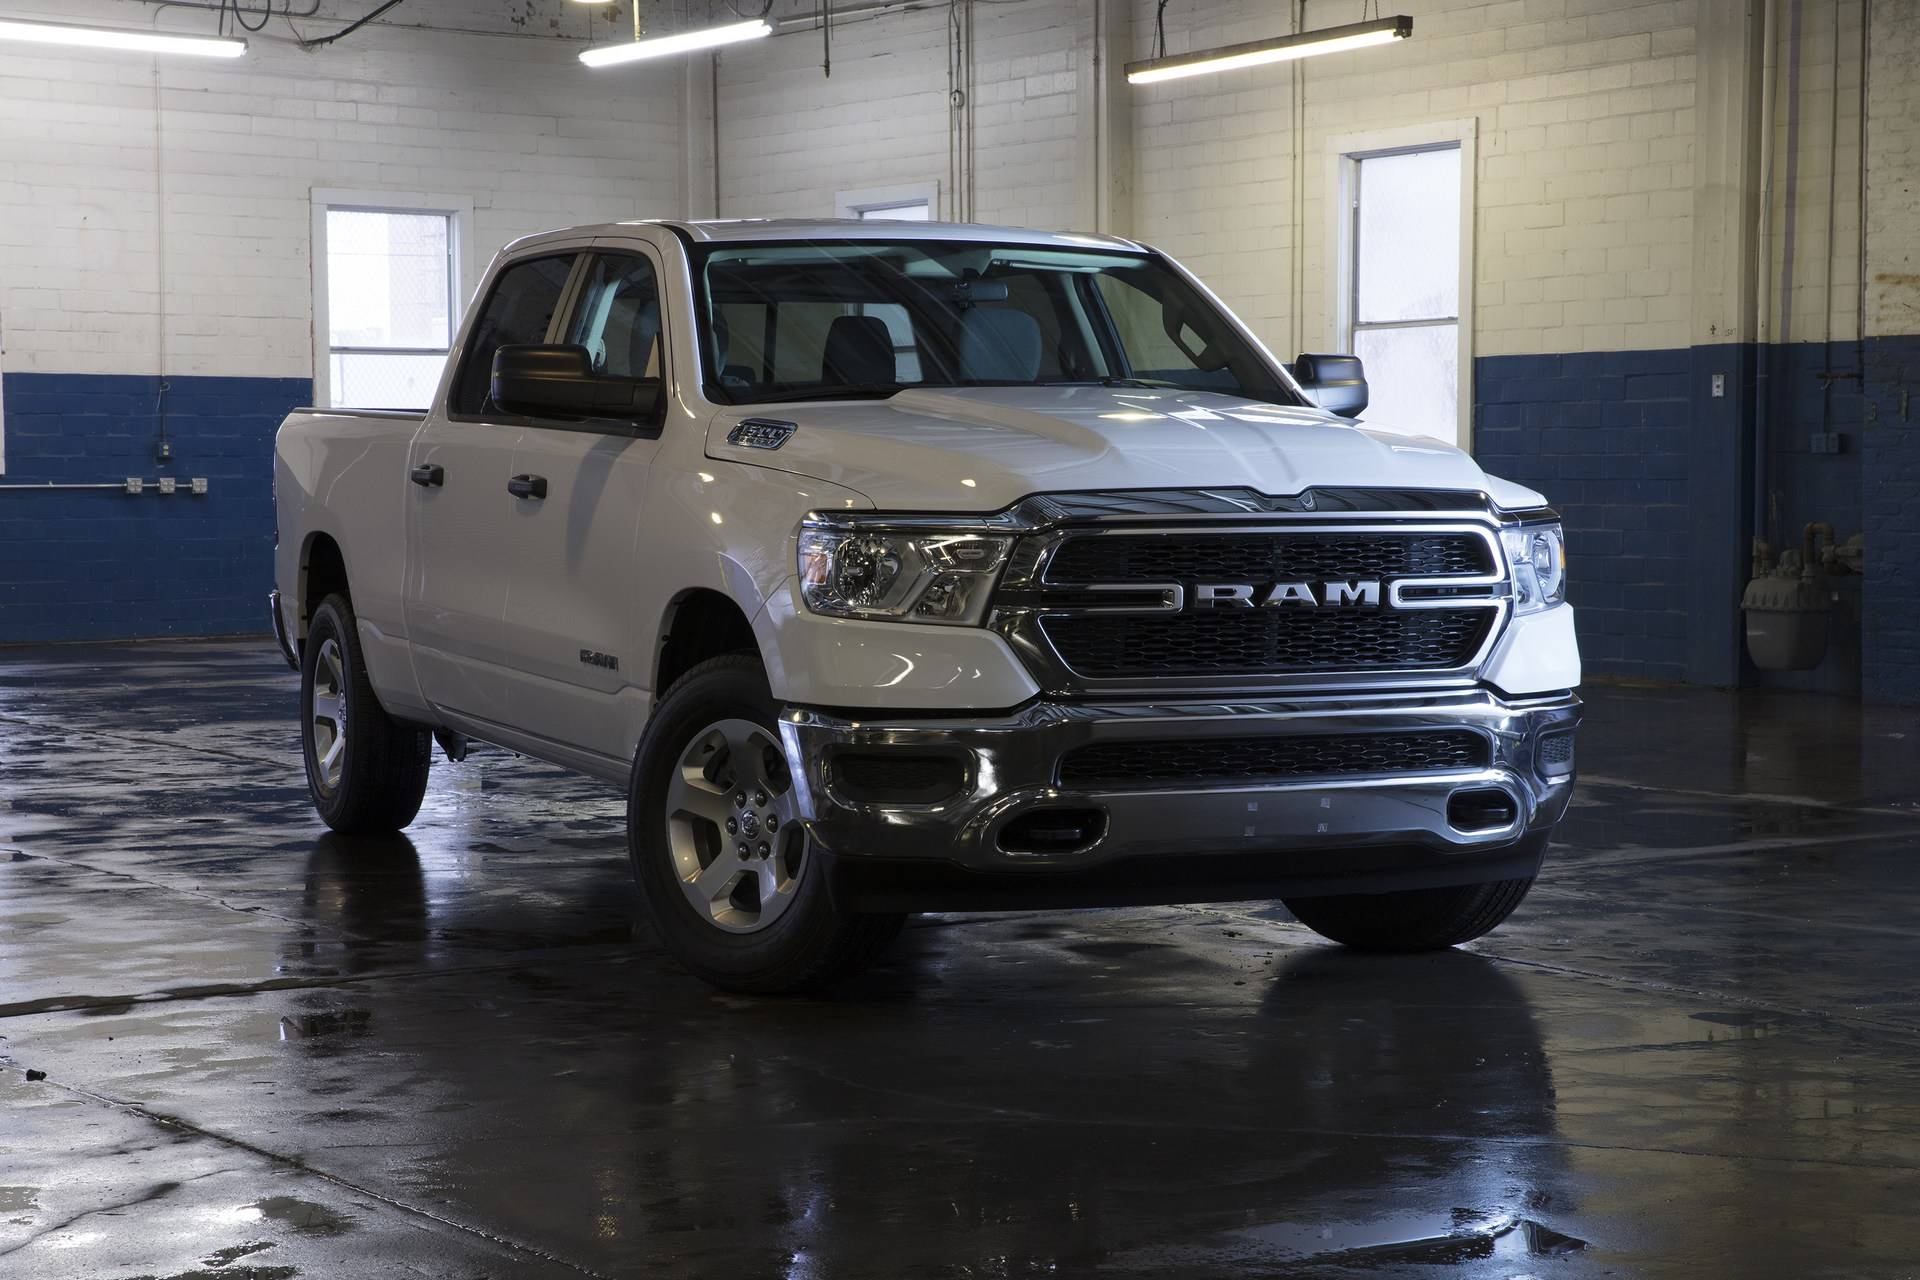 Least Expensive Ram Priced At Because Reasons on Dodge Ram 3500 Interior